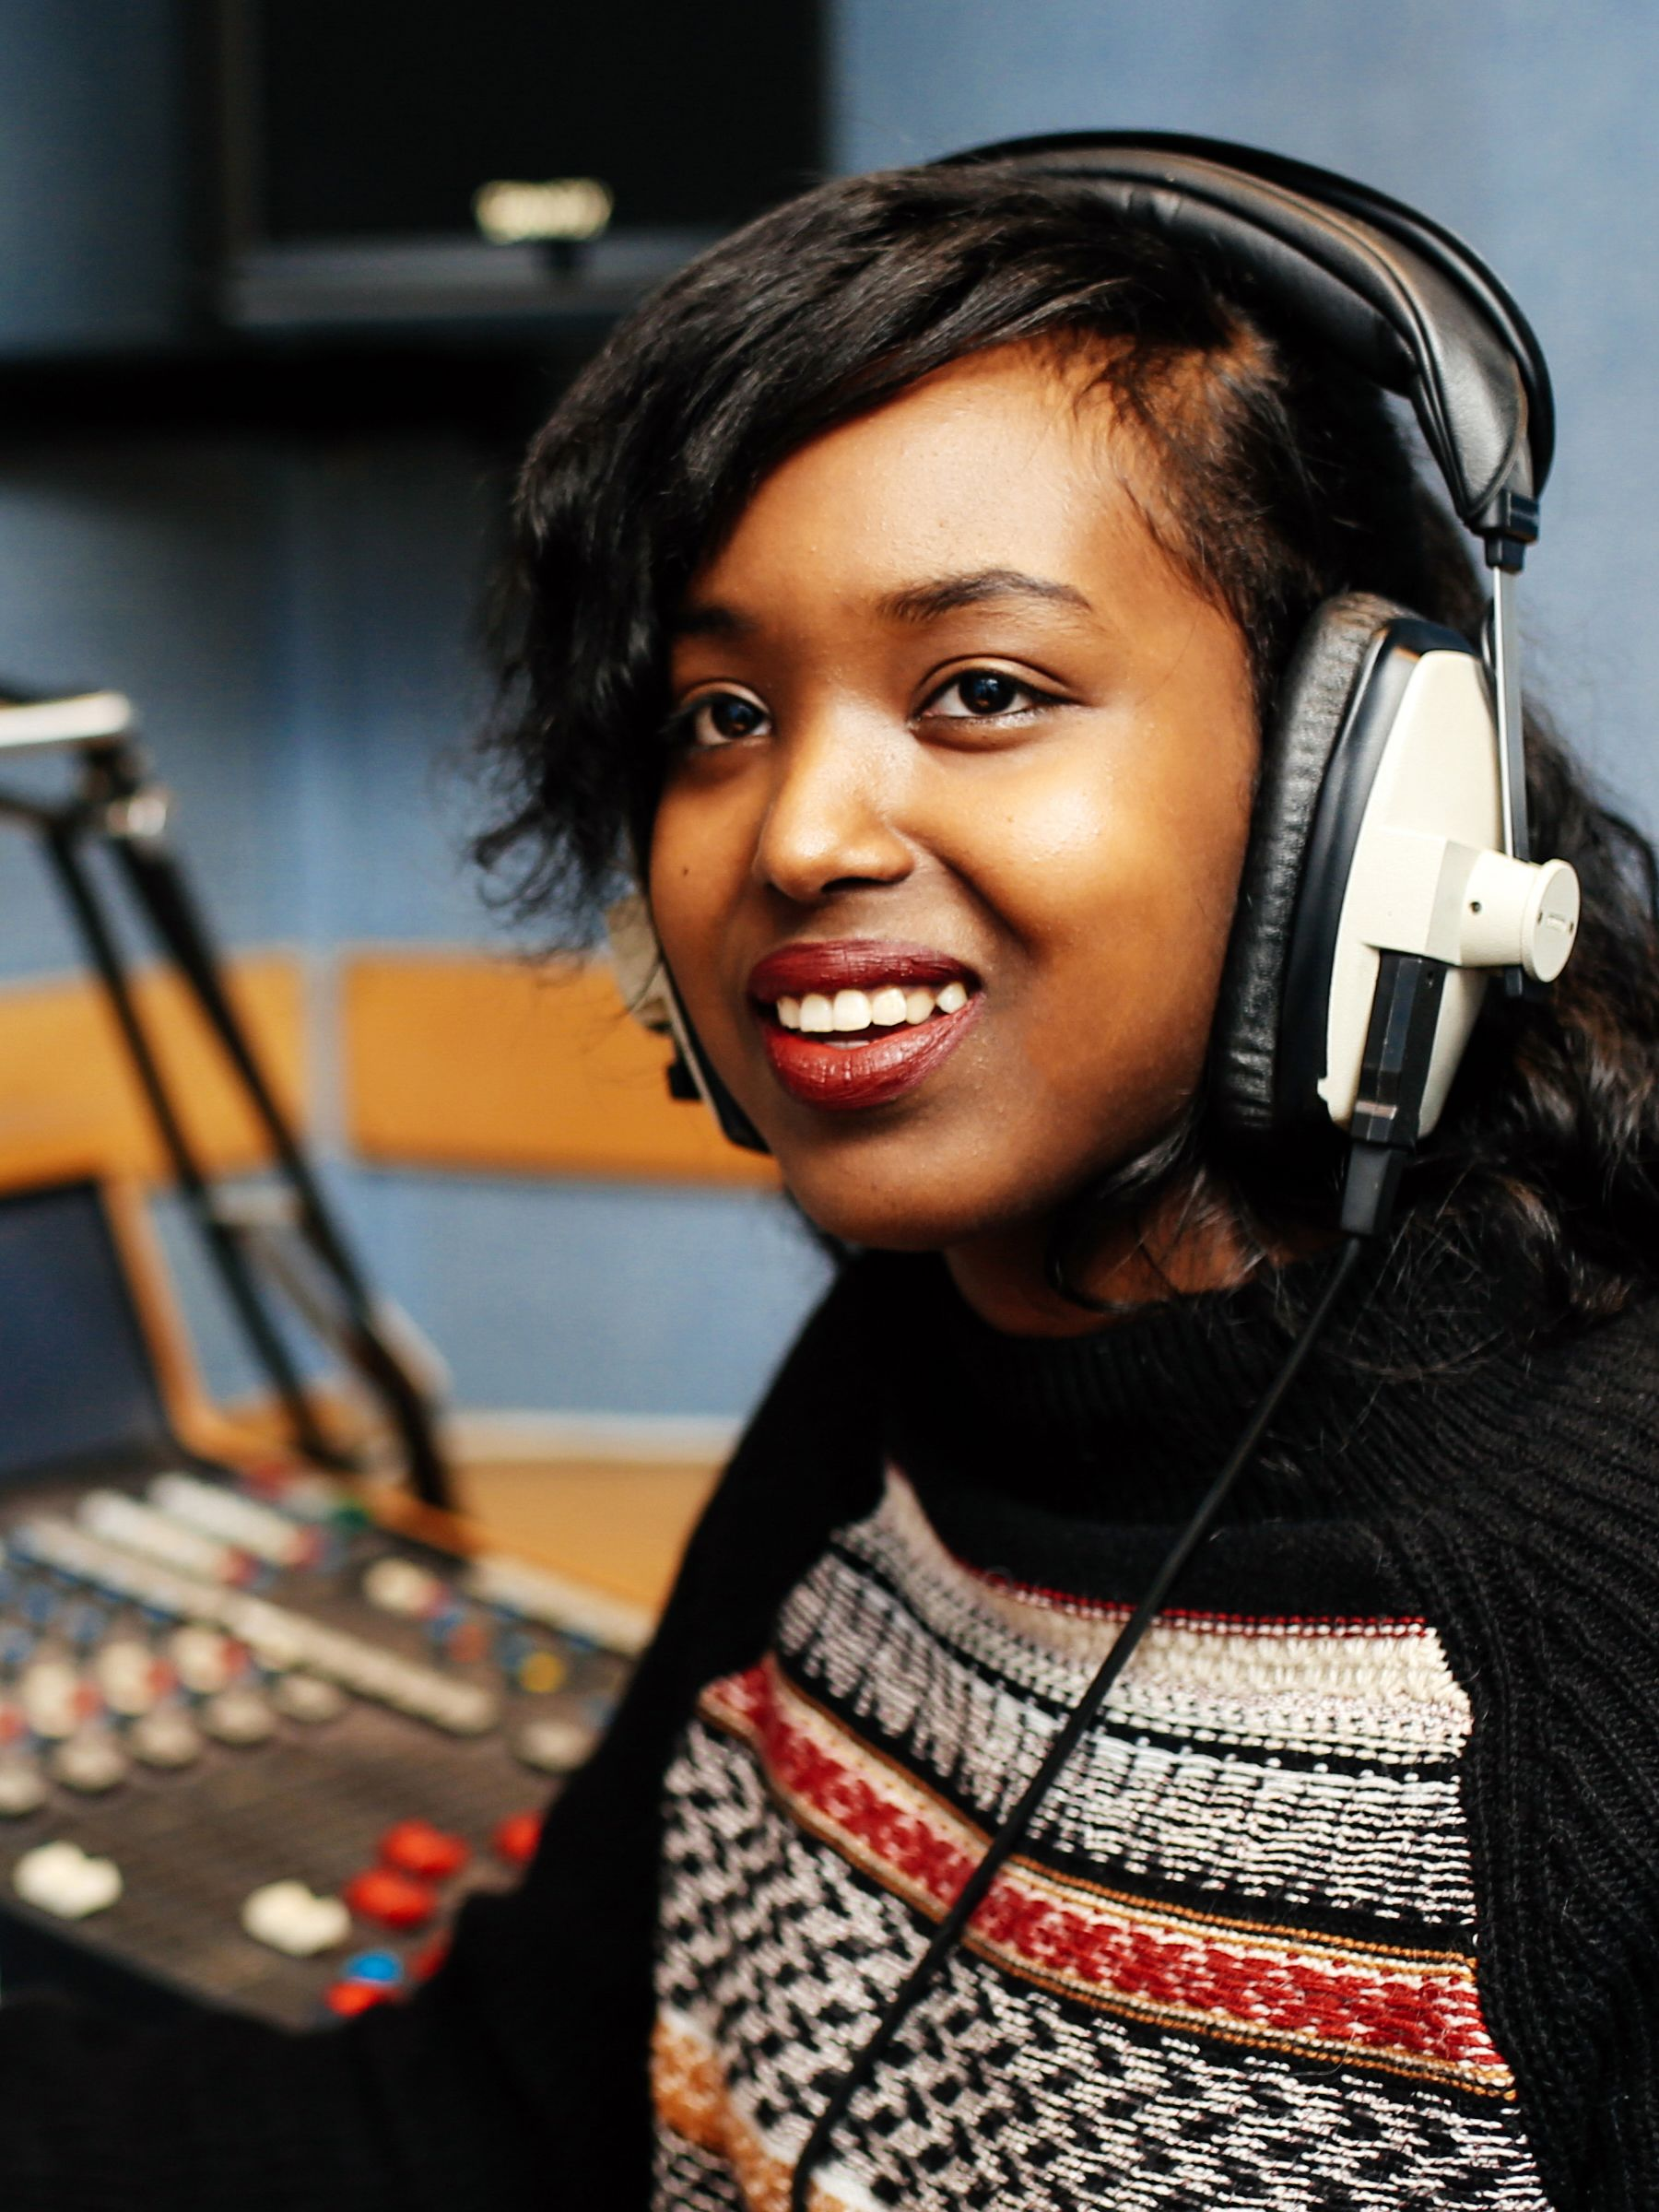 Woman in a radio booth with headphones on and a multicoloured jumper